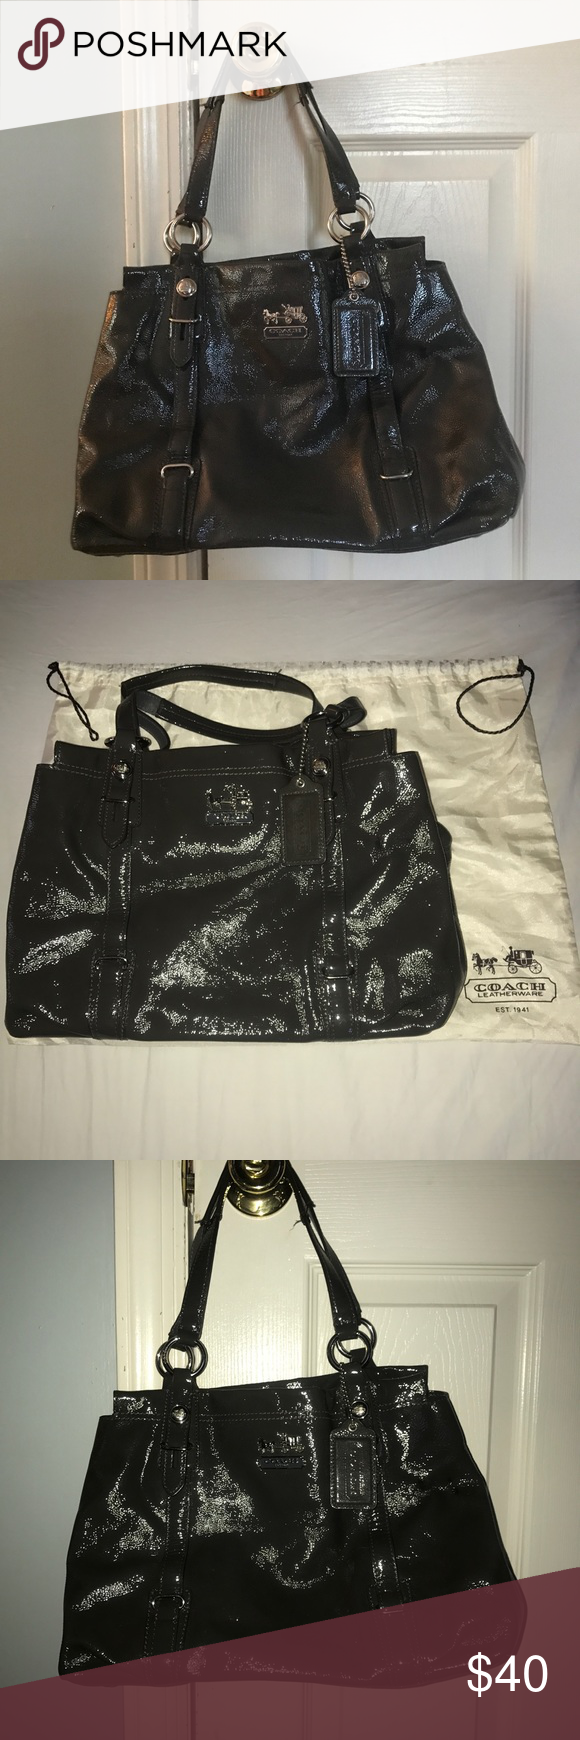 AUTHENTIC COACH MIA PATENT LEATHER PURSE Silver tone hardware Coach plate  on the front Zip top 7b31267fdf508